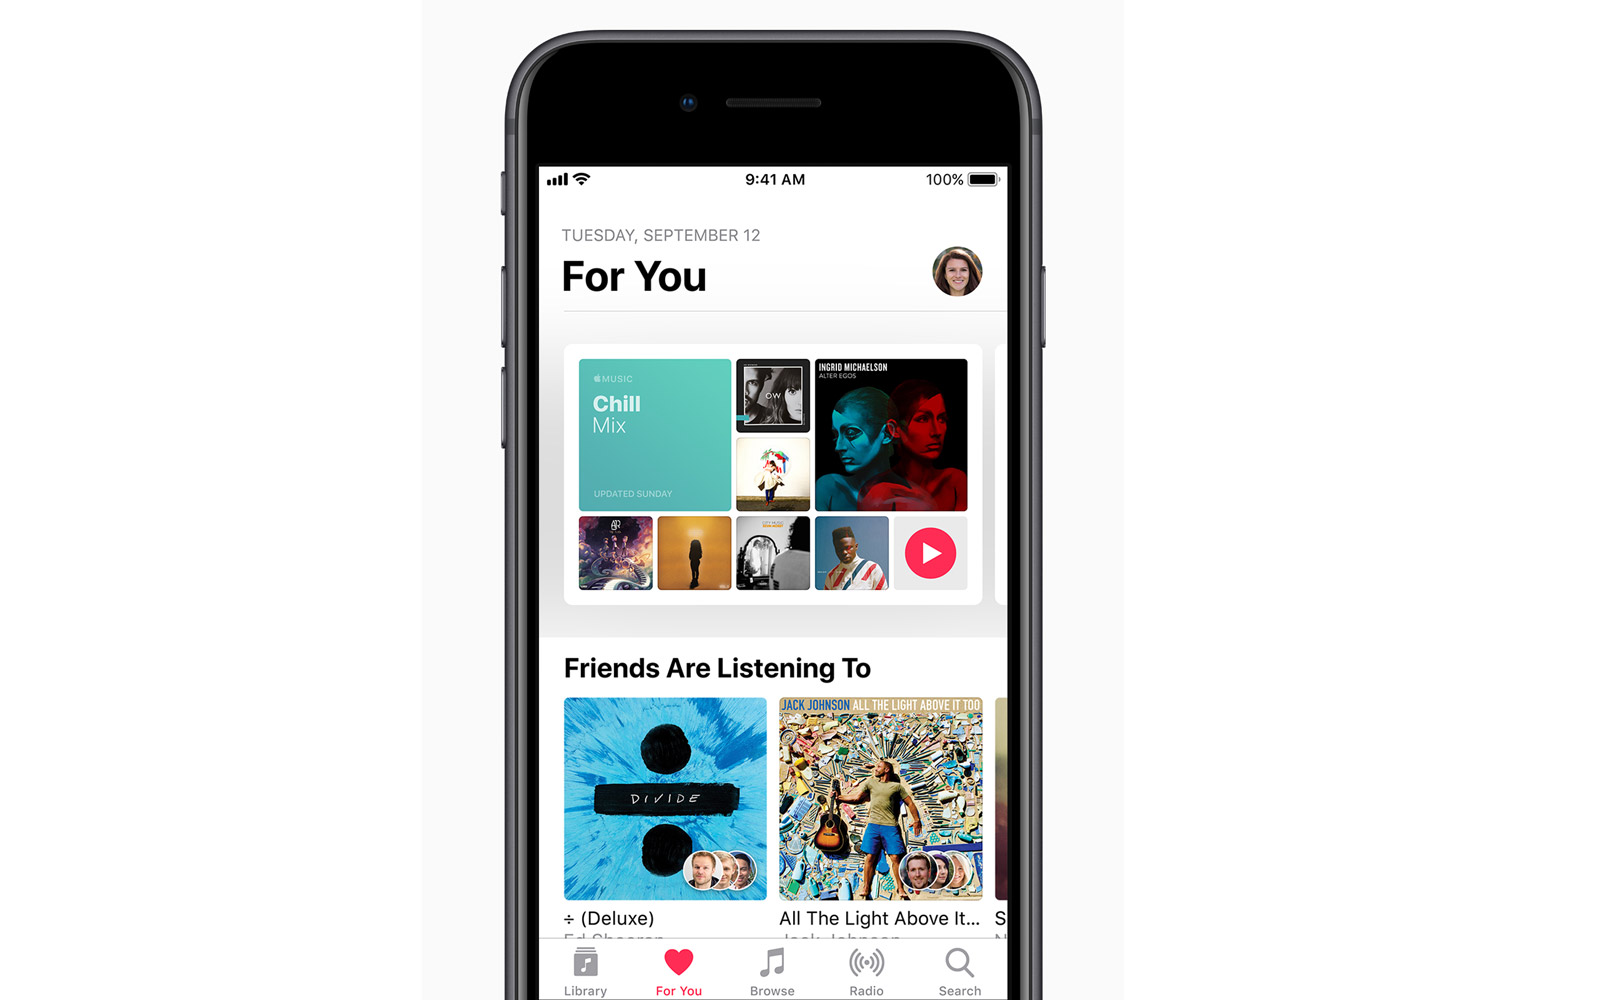 New music sharing feature on Apple's iOS 11